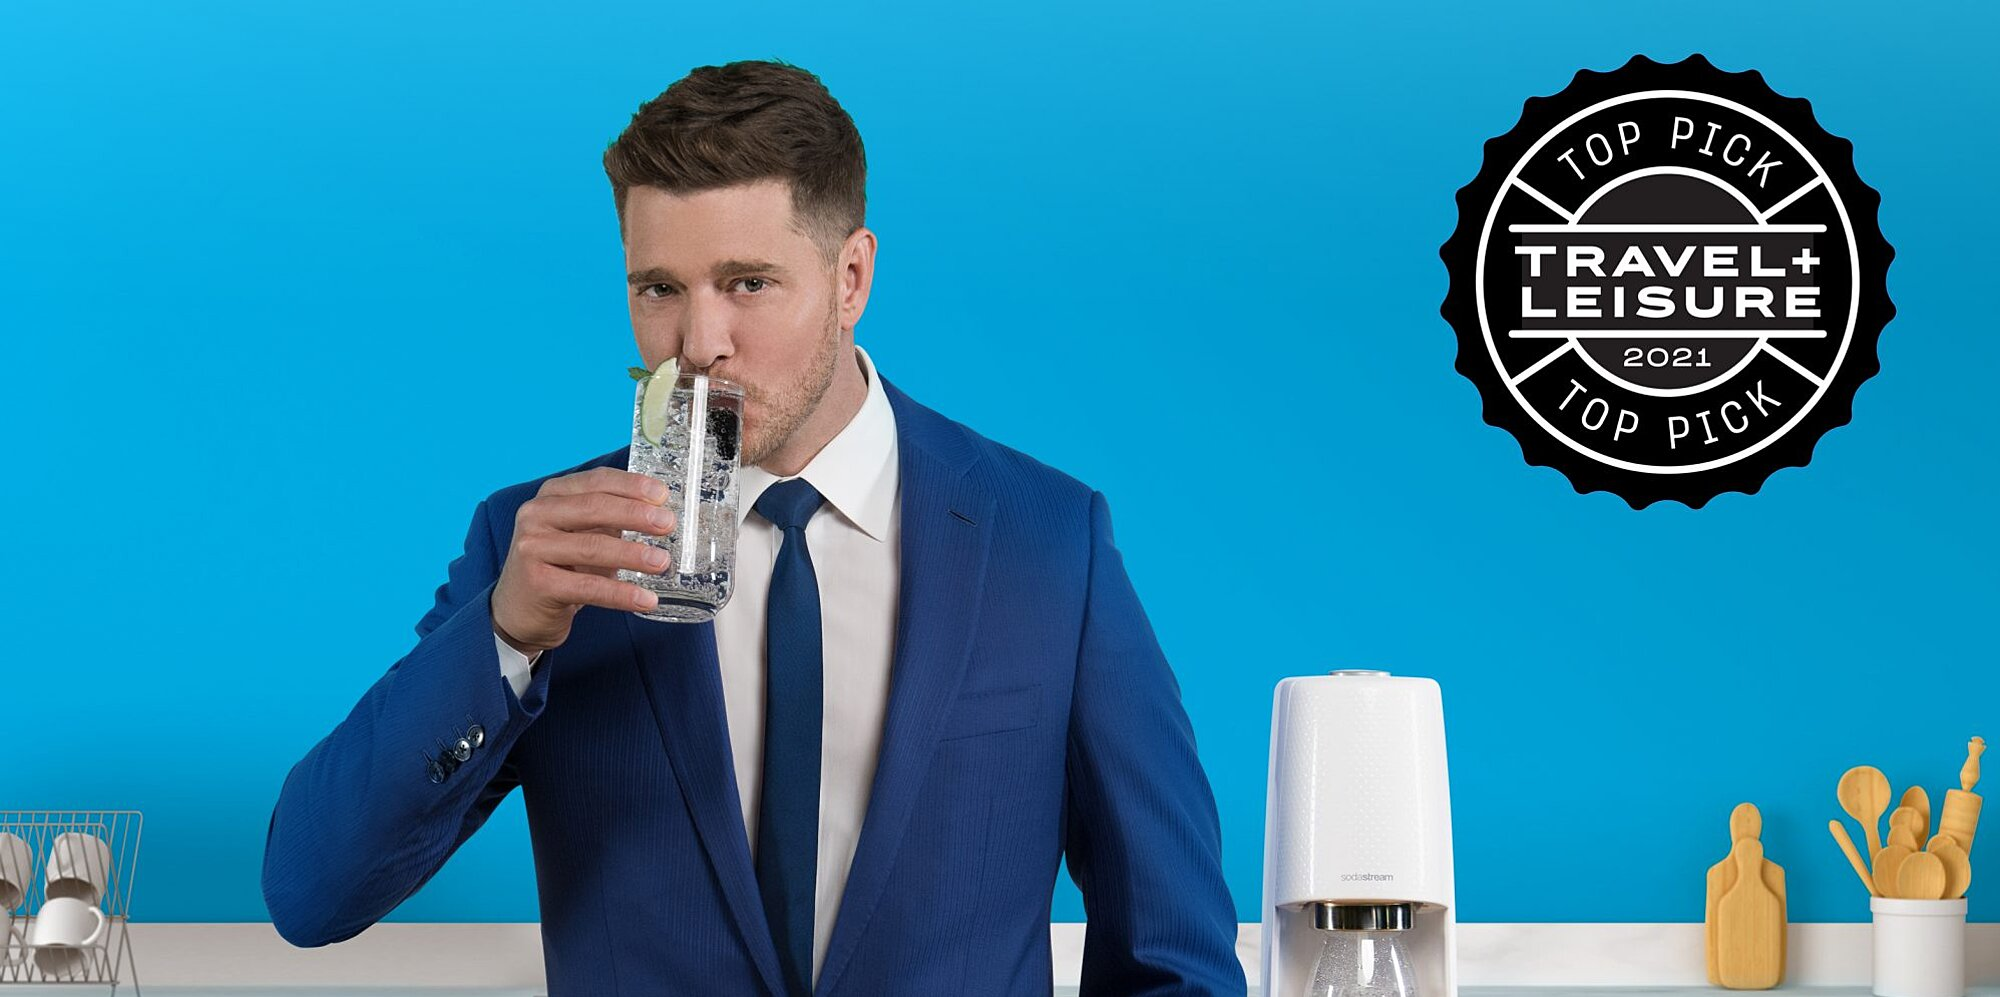 Michael Bublé Talks Bubly's Sodastream Collab, His New Album, And Where He Misses Traveling Most photo